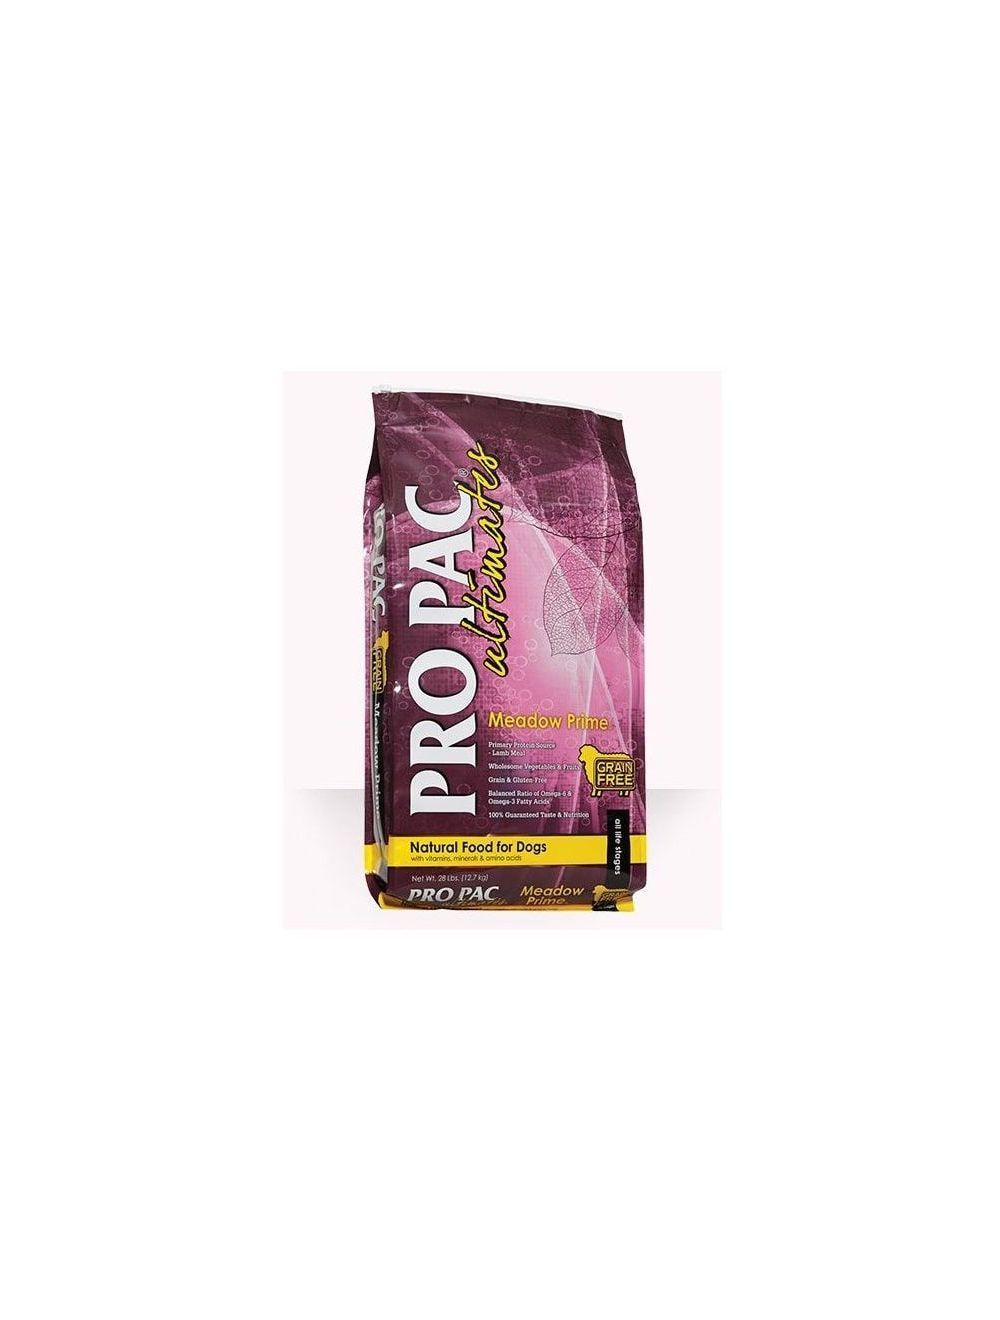 Pro Pac Ultimates Meadow Cordero y patatas 2.5 Kg